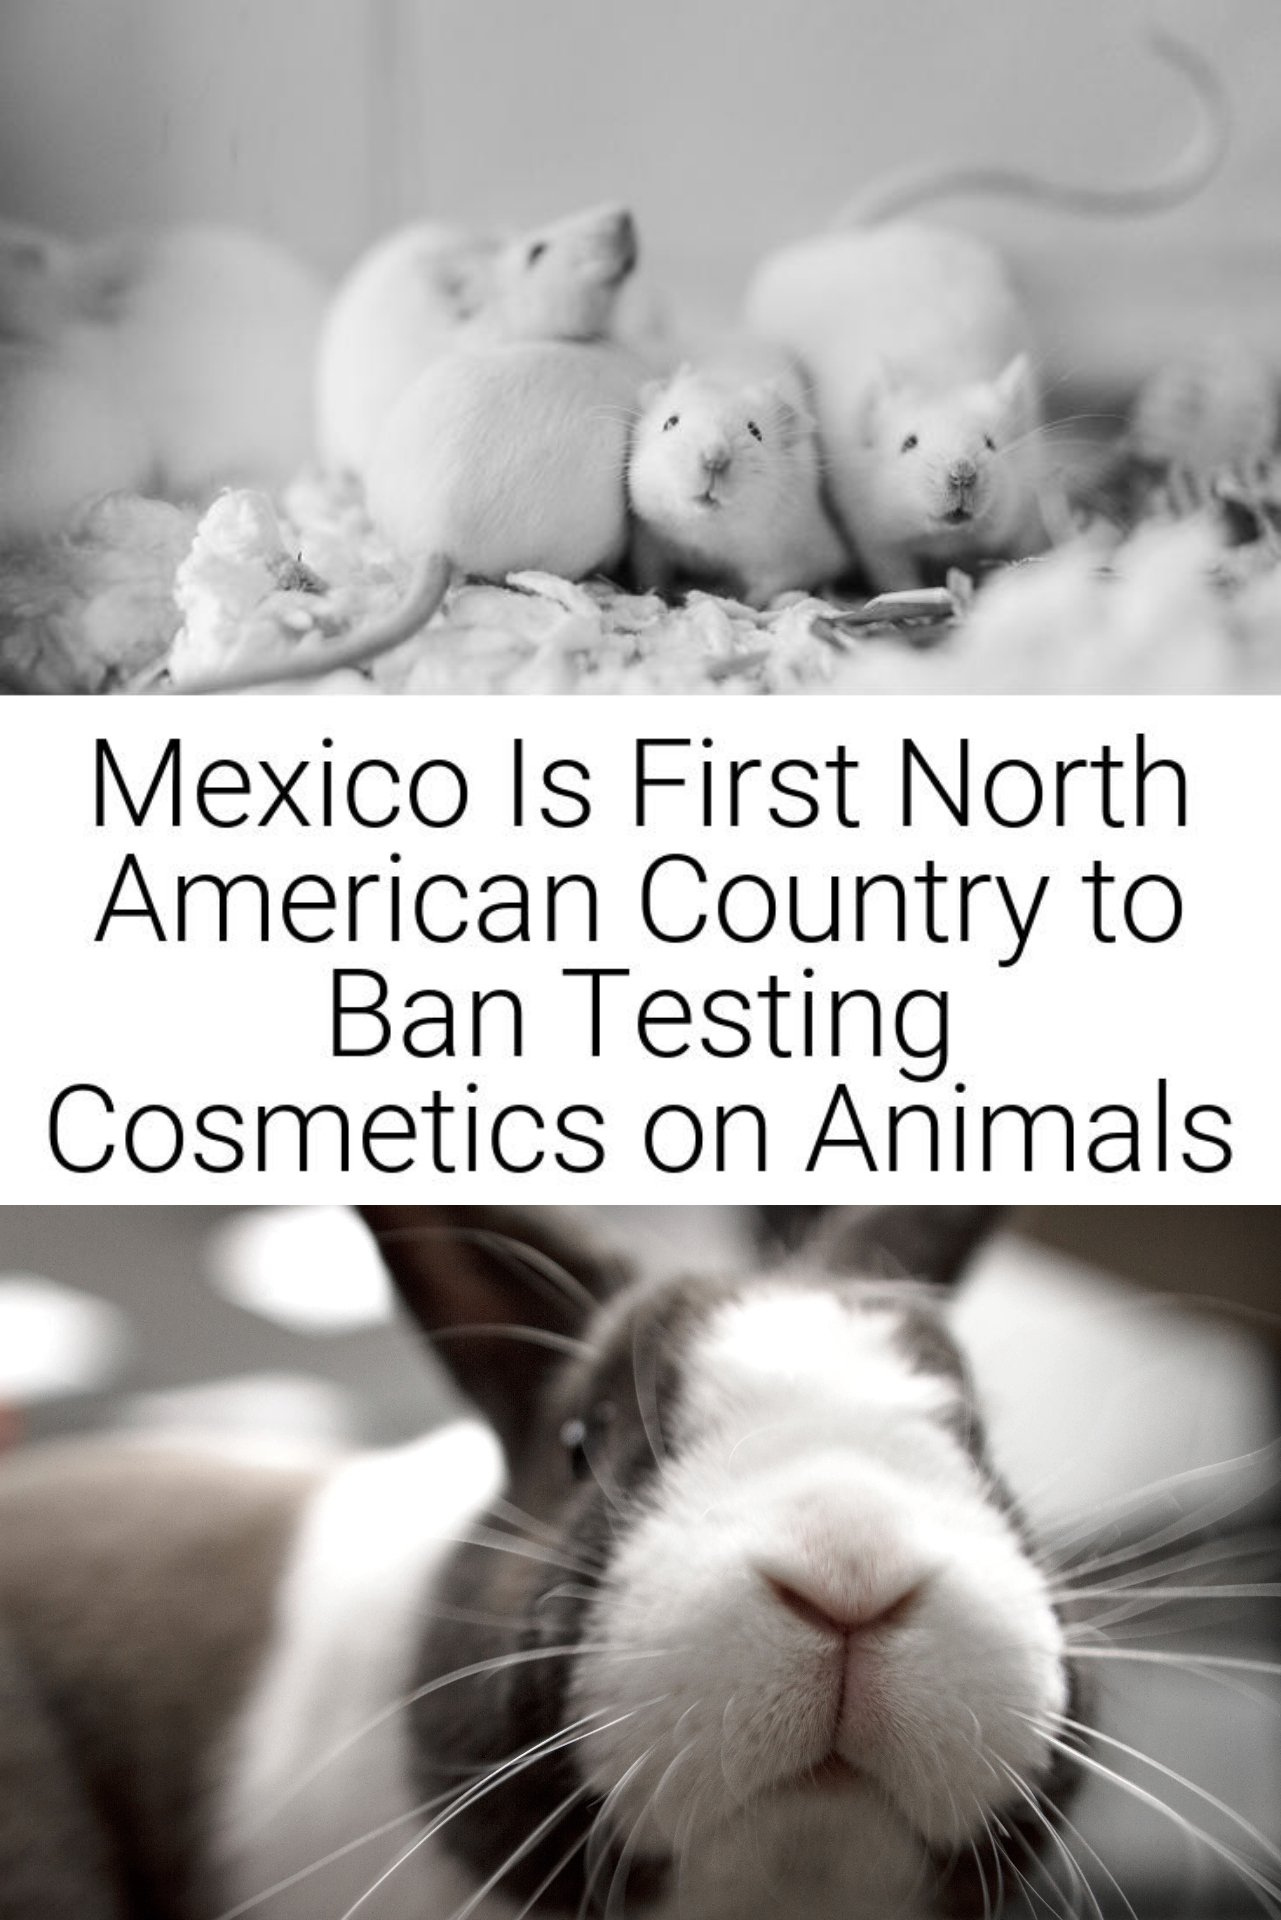 Mexico Is First North American Country to Ban Testing Cosmetics on Animals